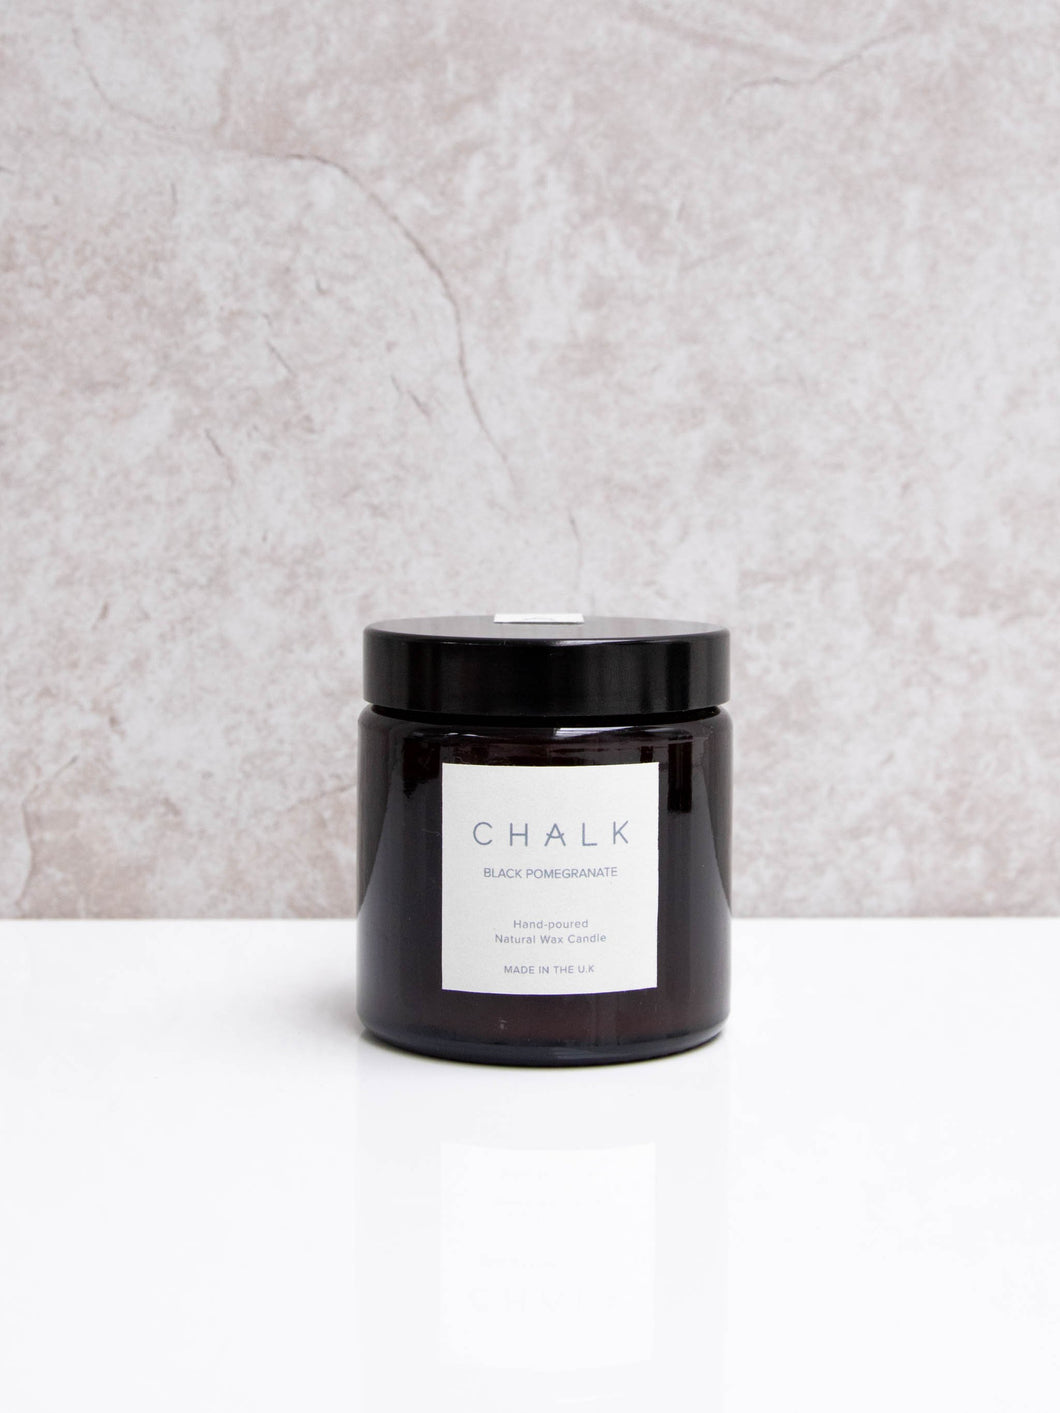 Black pomegranate natural wax candle